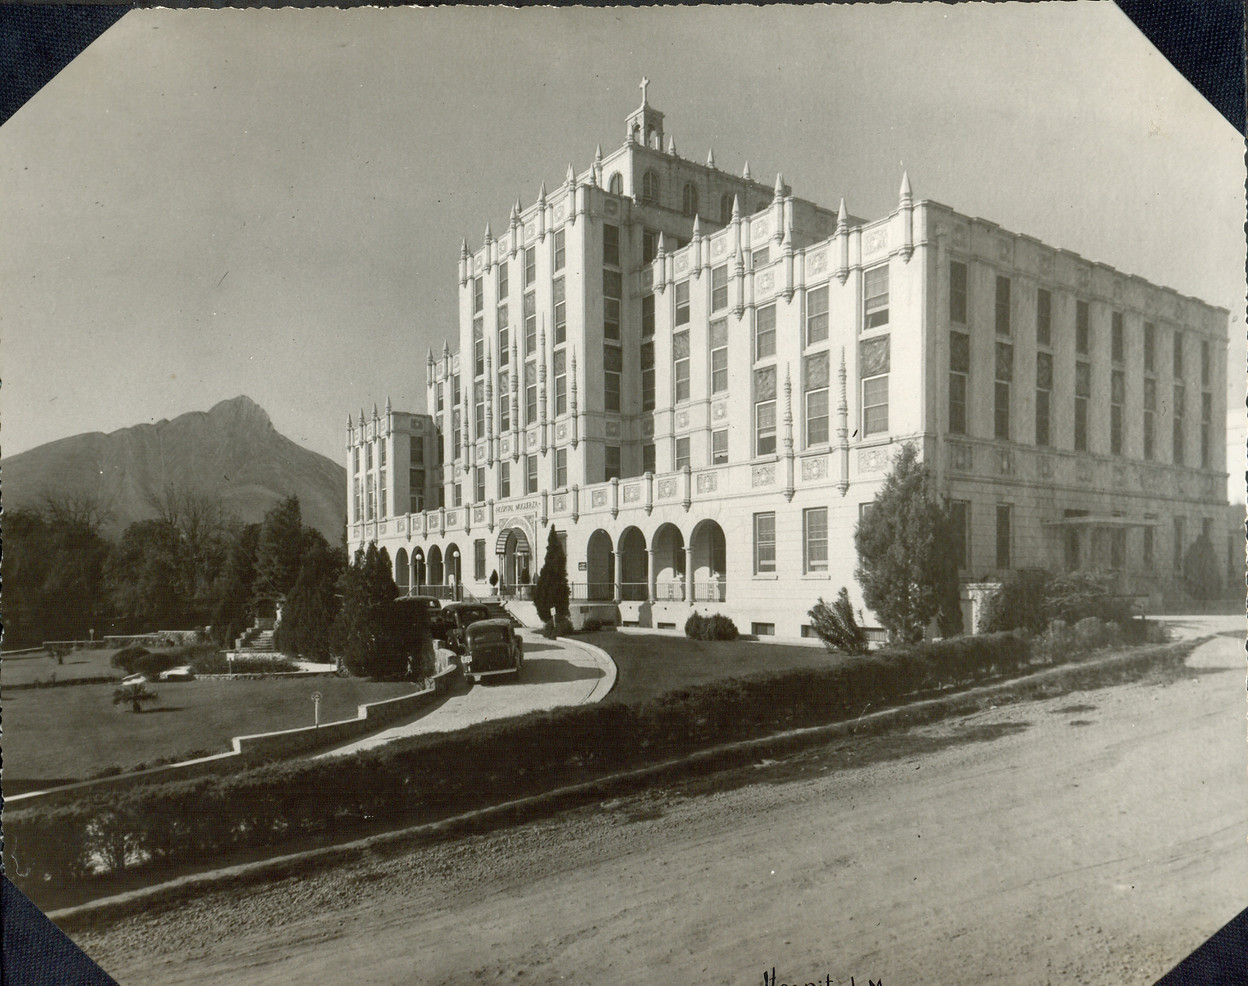 At the same time hospitals were being built in the United States, our Sisters in Mexico were being asked to staff many private hospitals. Incarnate Word Sisters were involved in the early planning and administration of the Muguerza Hospital in Monterrey and in opening the school of nursing there in 1940.